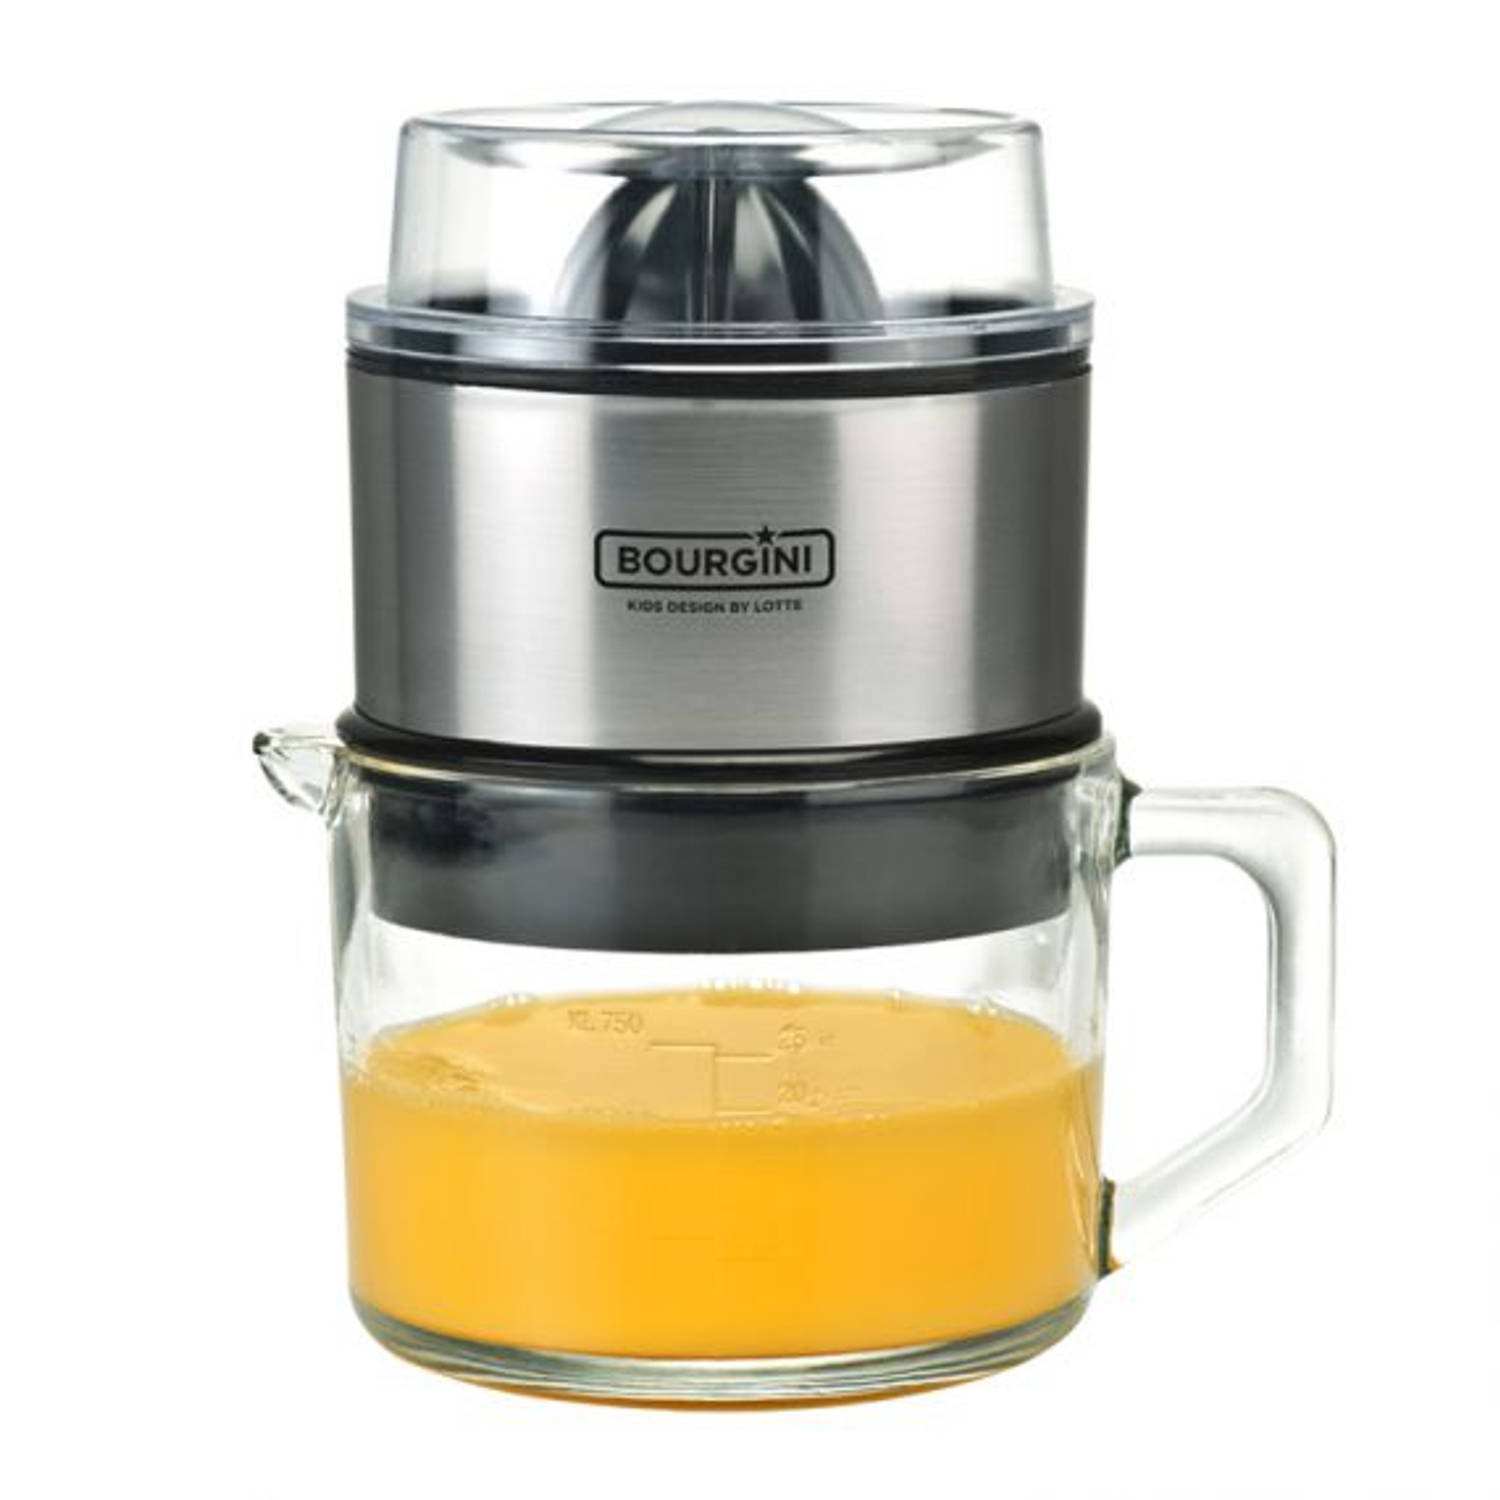 Korting Bourgini Lotte Juicer Deluxe 0.75l